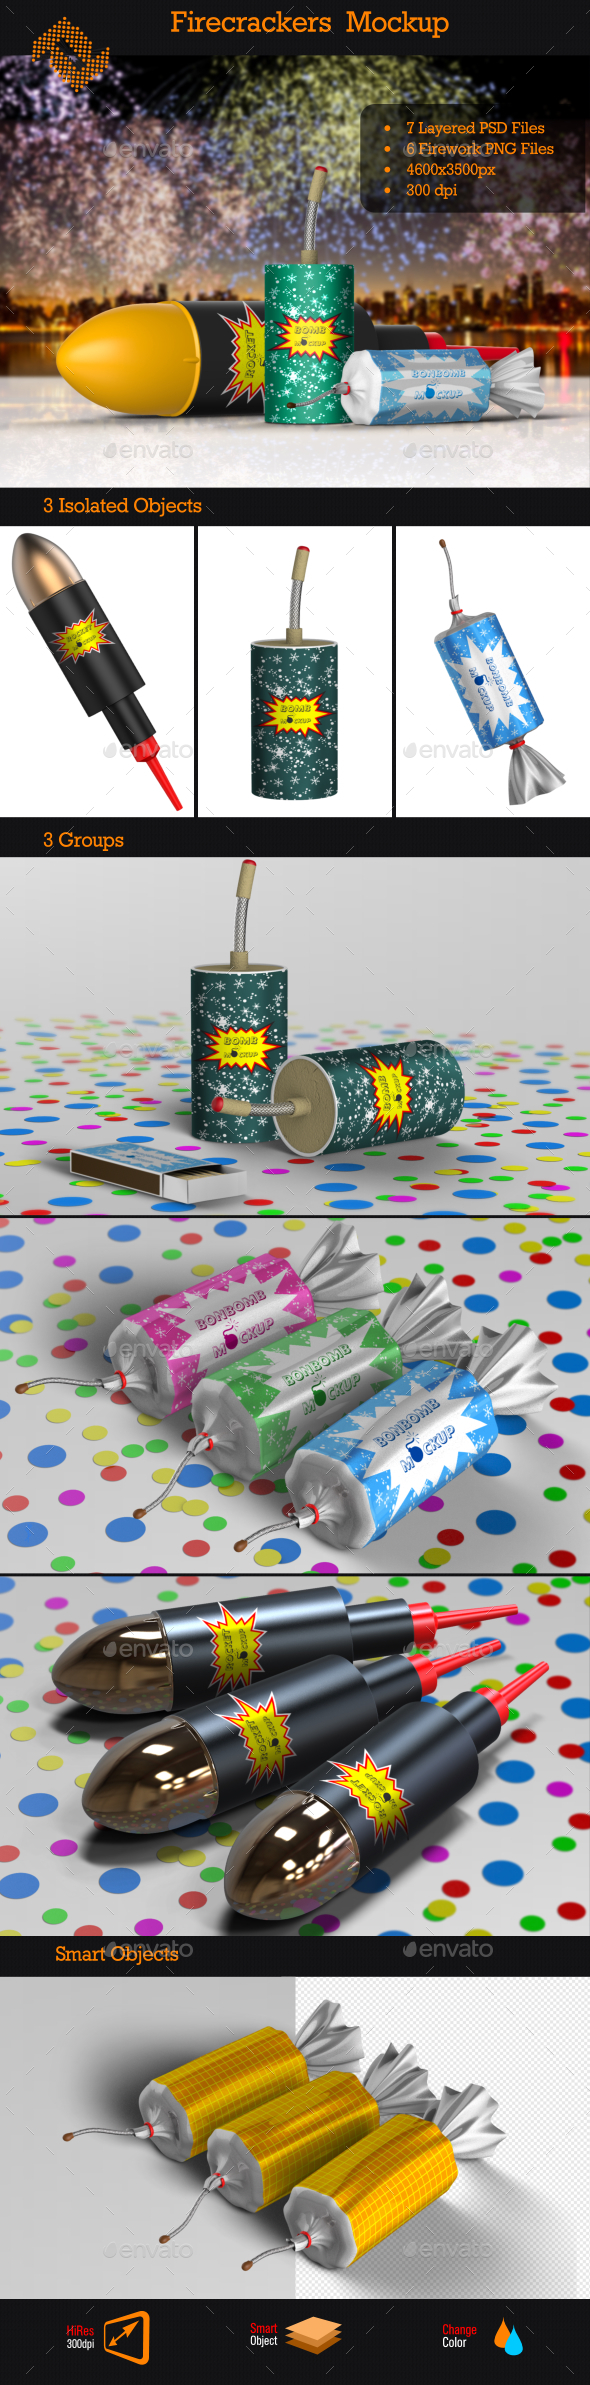 GraphicRiver Firecrackers Fireworks Mockup 9517632